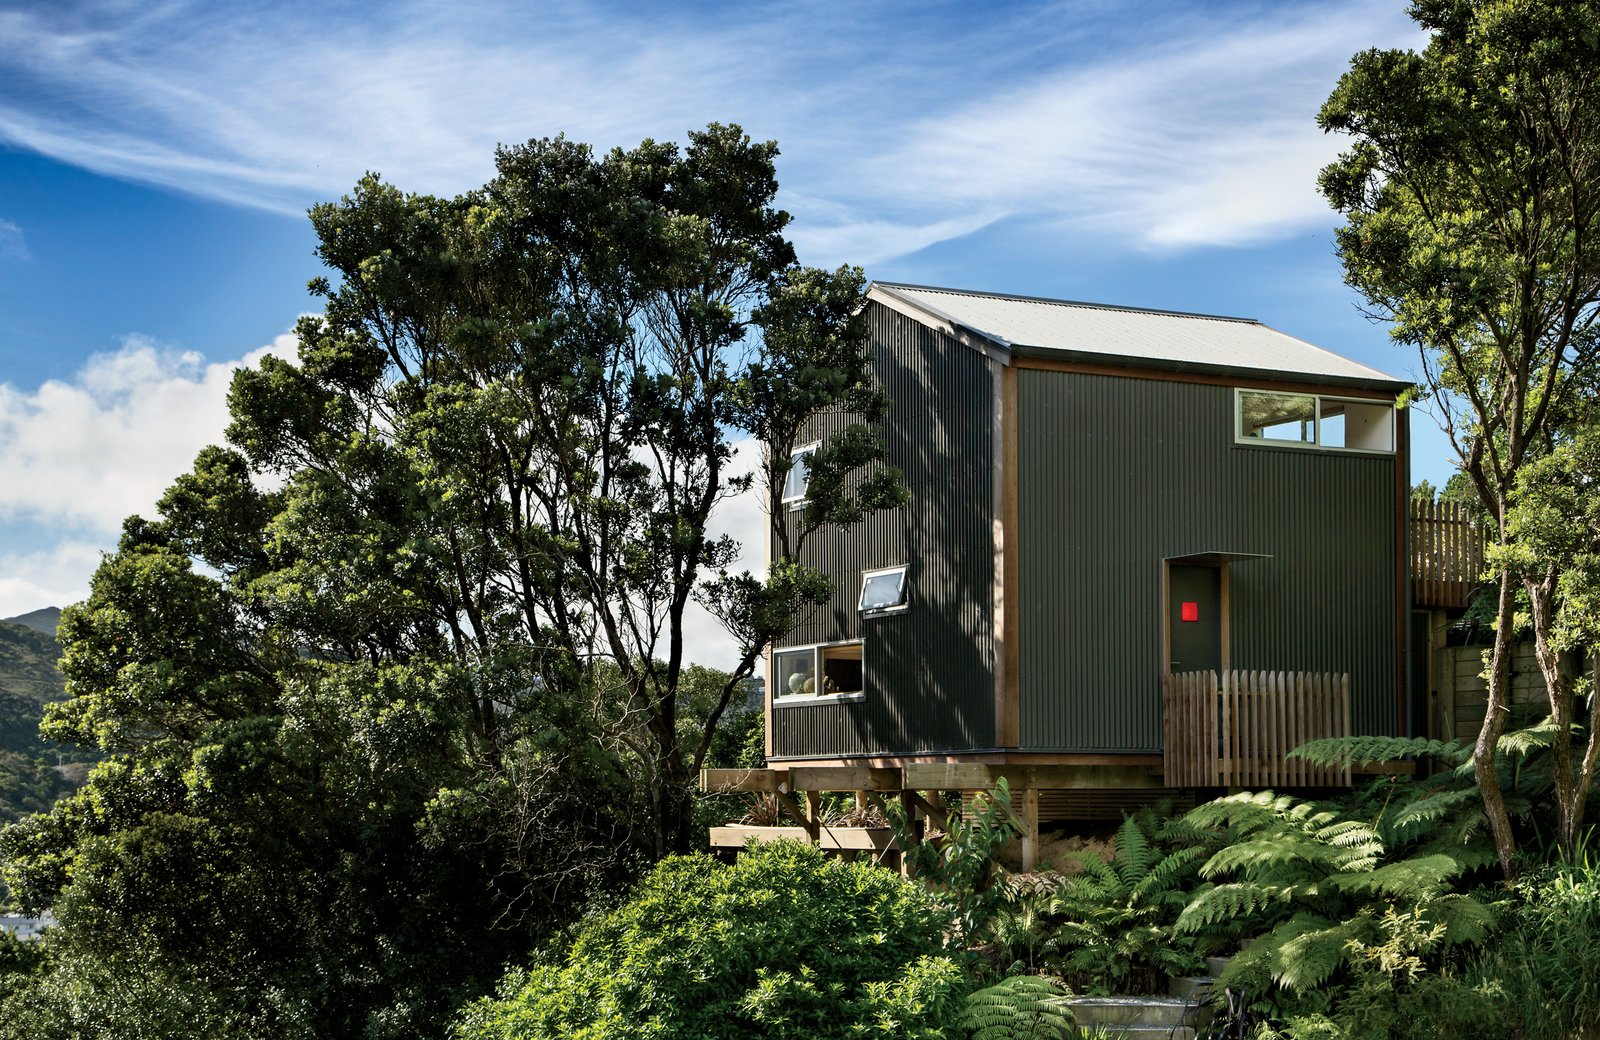 Inspired by the small scale of Japanese residences—in particular, Makoto Masuzawa's 1952 Minimum House—architect Andrew Simpson designed his own economical 538-square-foot home, set into a wooded site in Island Bay, a coastal suburb outside Wellington, New Zealand. Tagged: Exterior, House, Metal Siding Material, Gable RoofLine, and Metal Roof Material.  Small Spaces by Arthur Ohouo from A Home's High Ceilings Are Responsible for Some Impressive Views